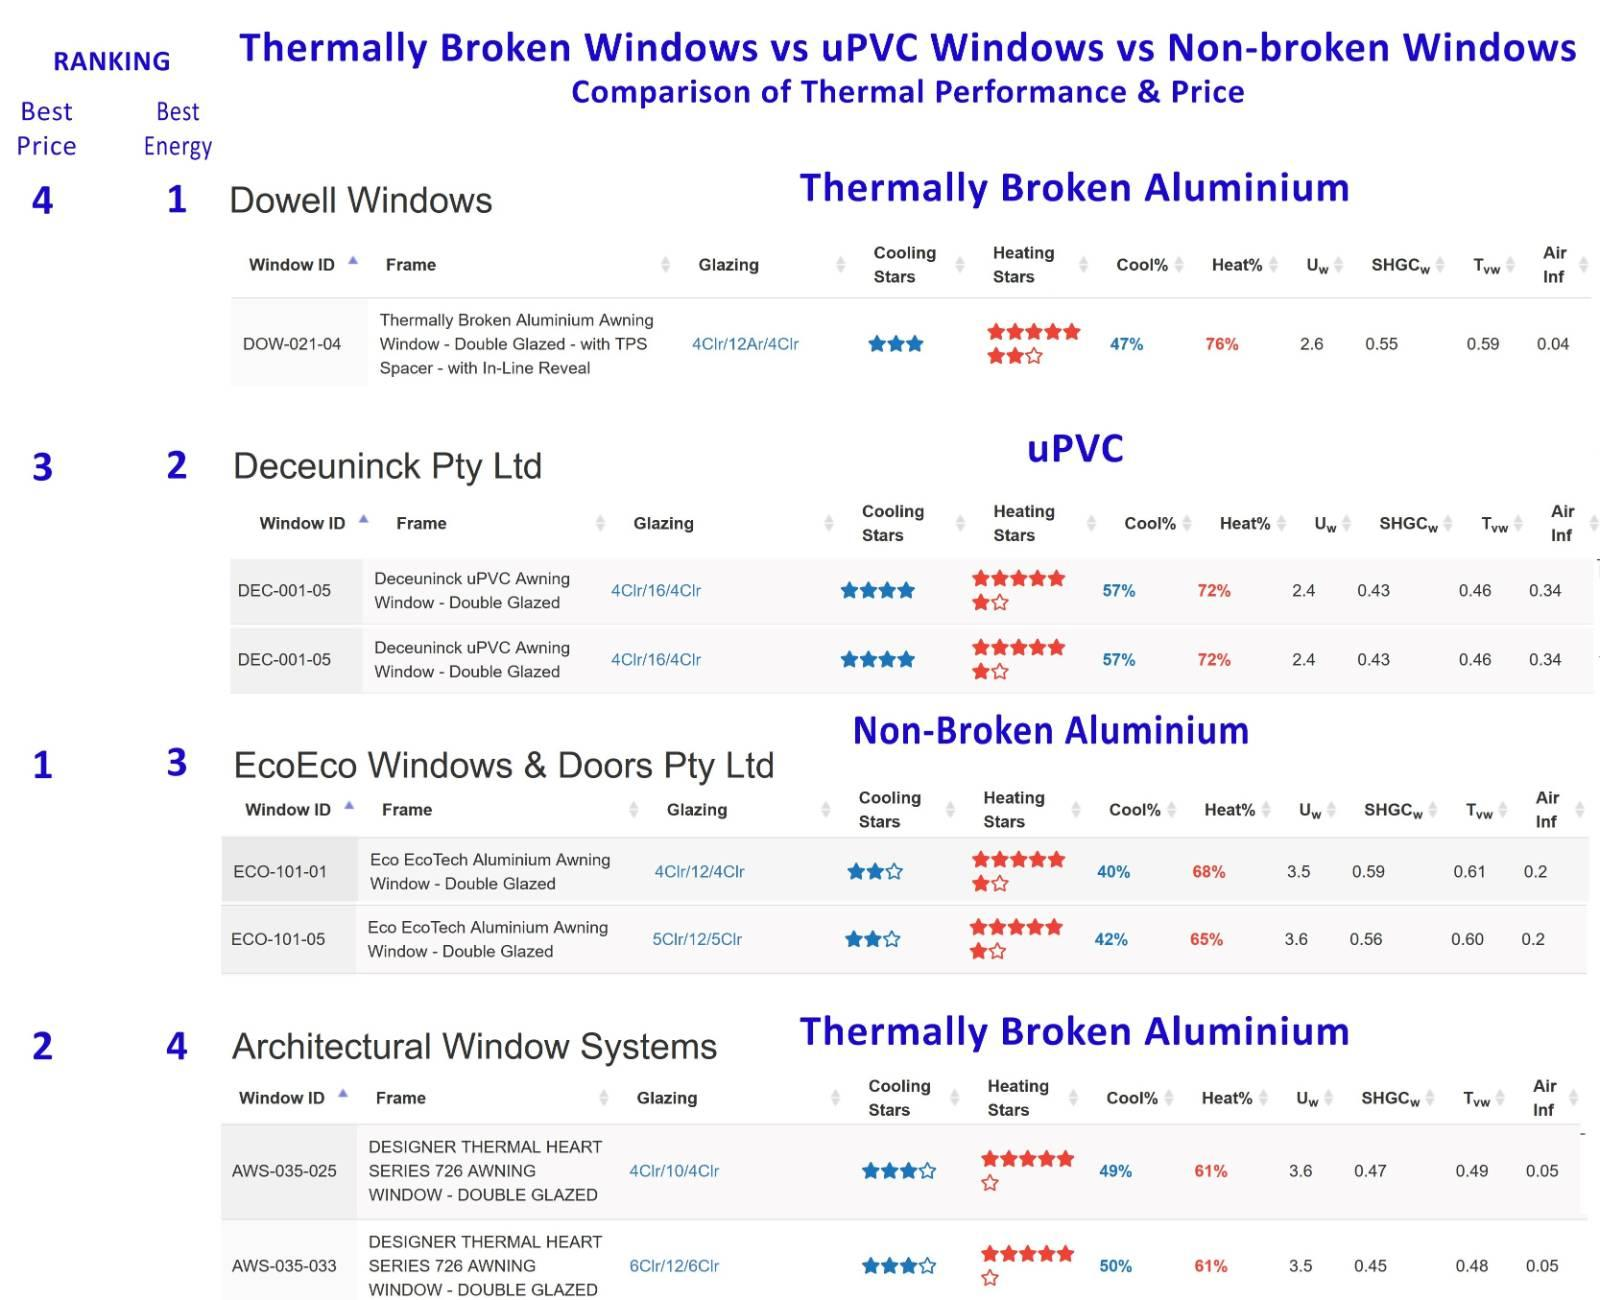 EcoTech (non-Thermal Break) Compared to TB and uPVC